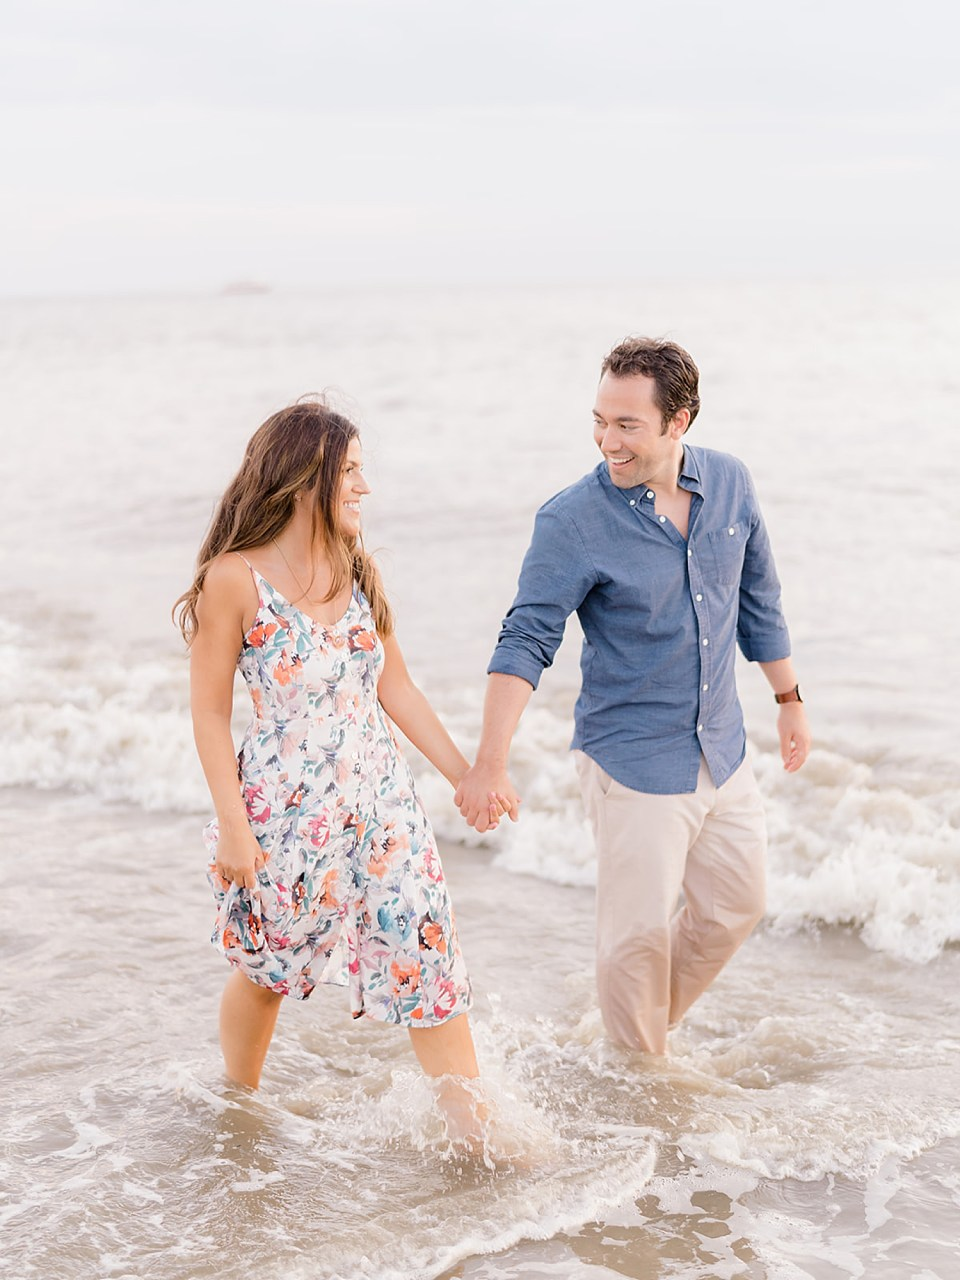 Willow Creek Winery Engagement Photography by Magdalena Studios 0022